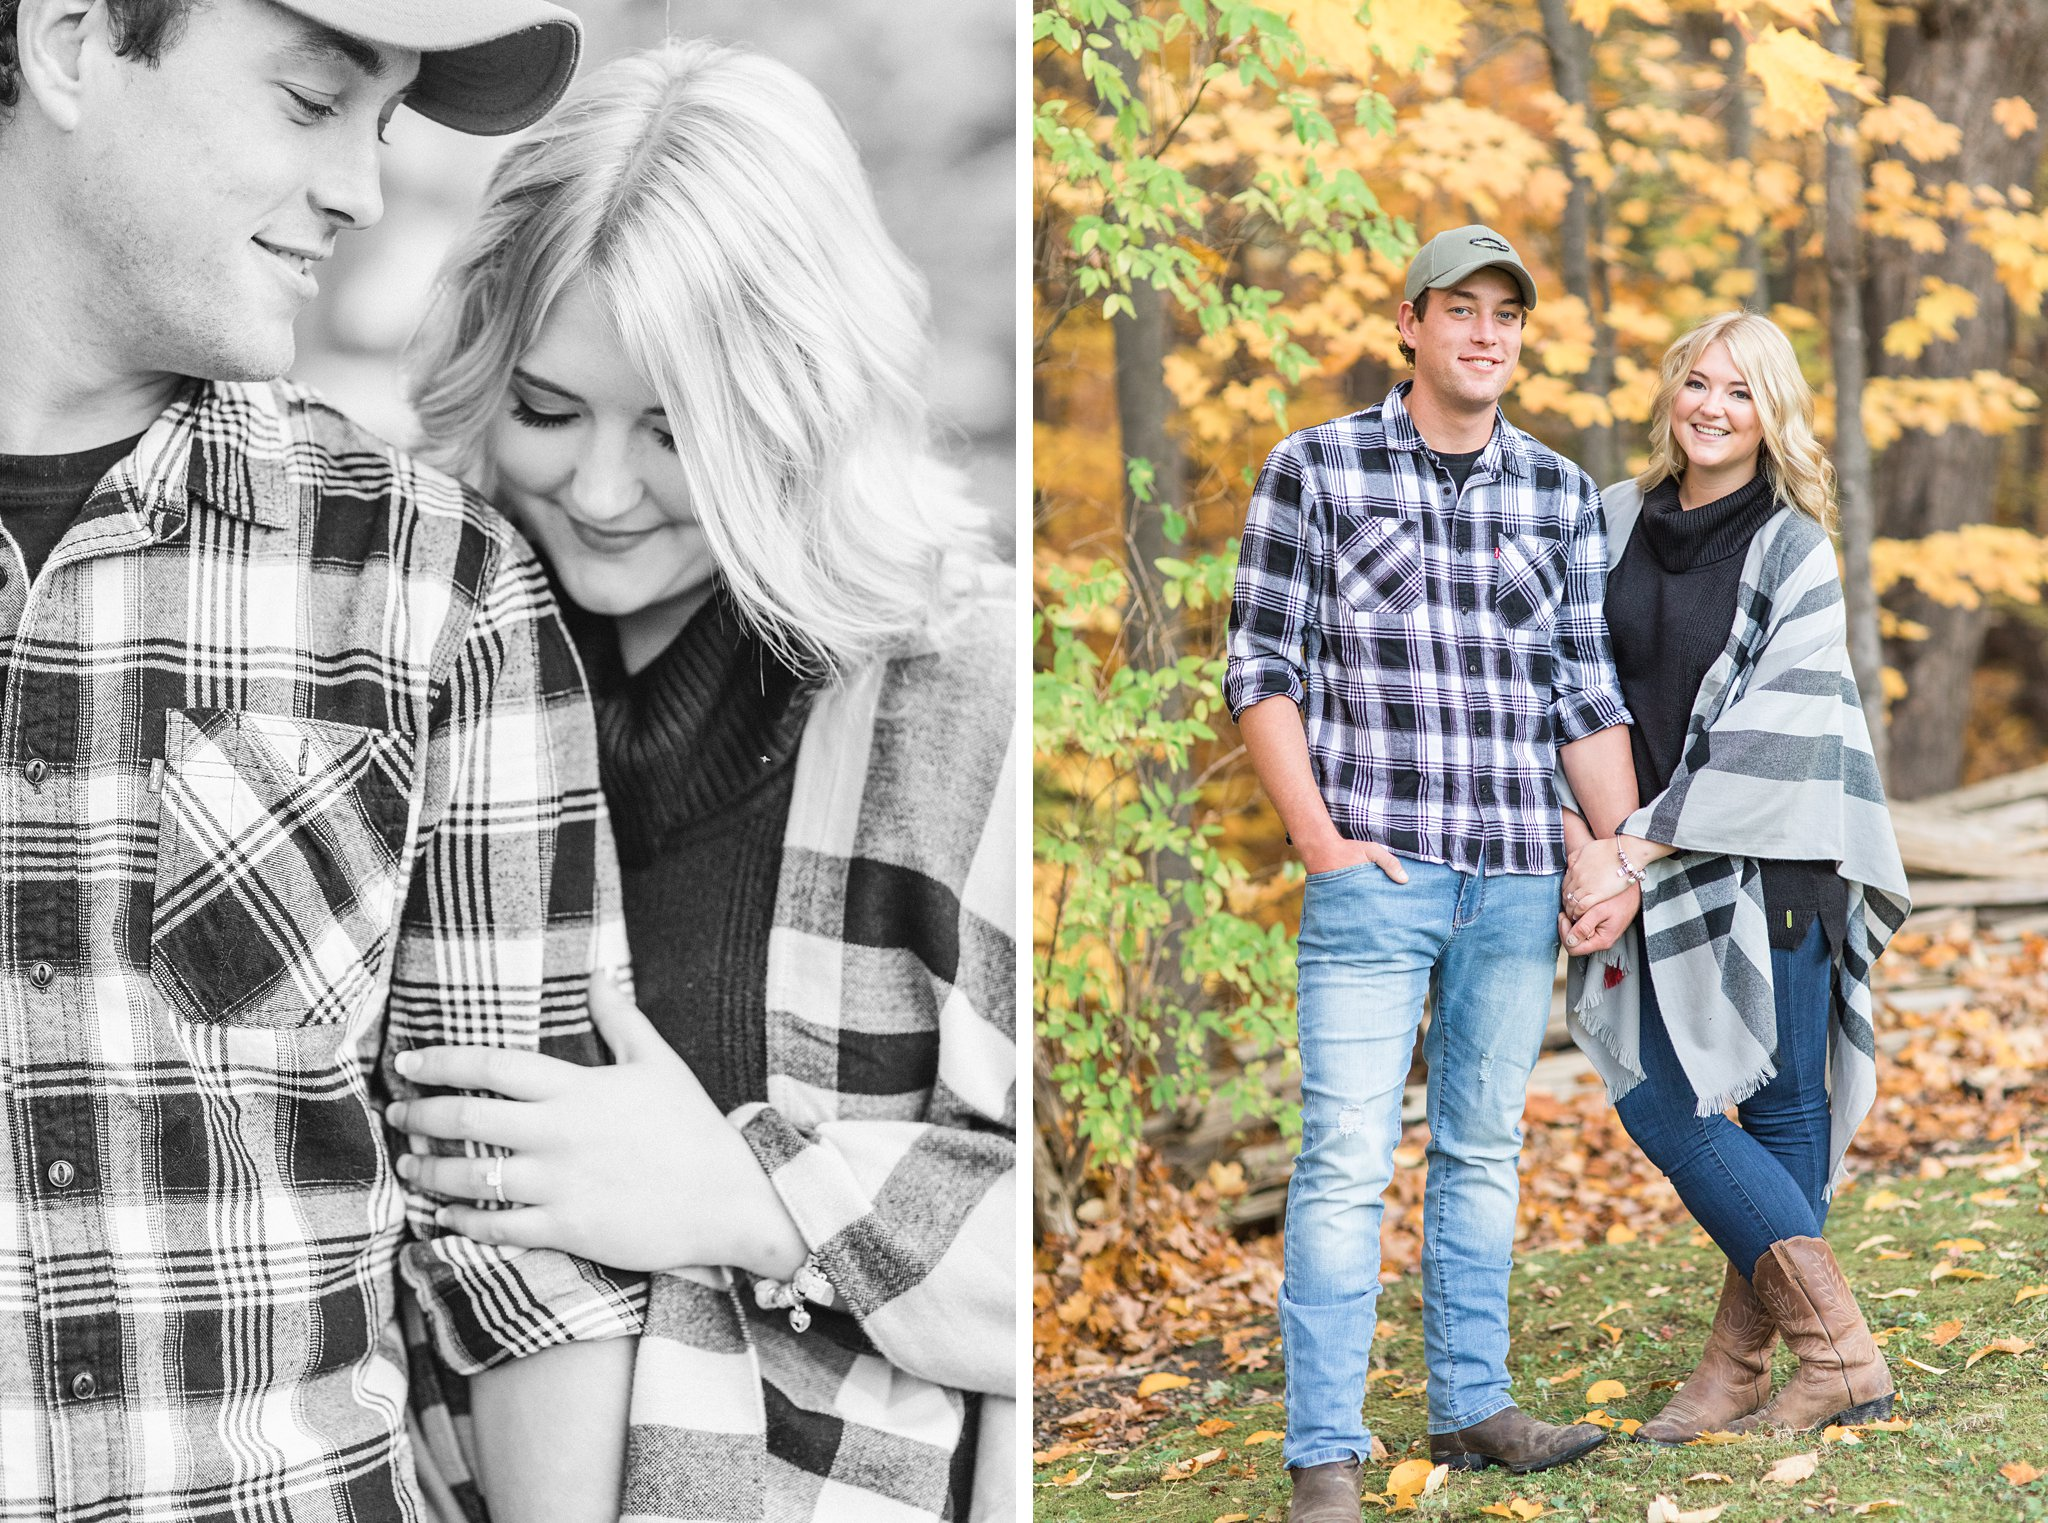 Casual fall outfits Old Chelsea Engagement Photos by Amy Pinder Photography